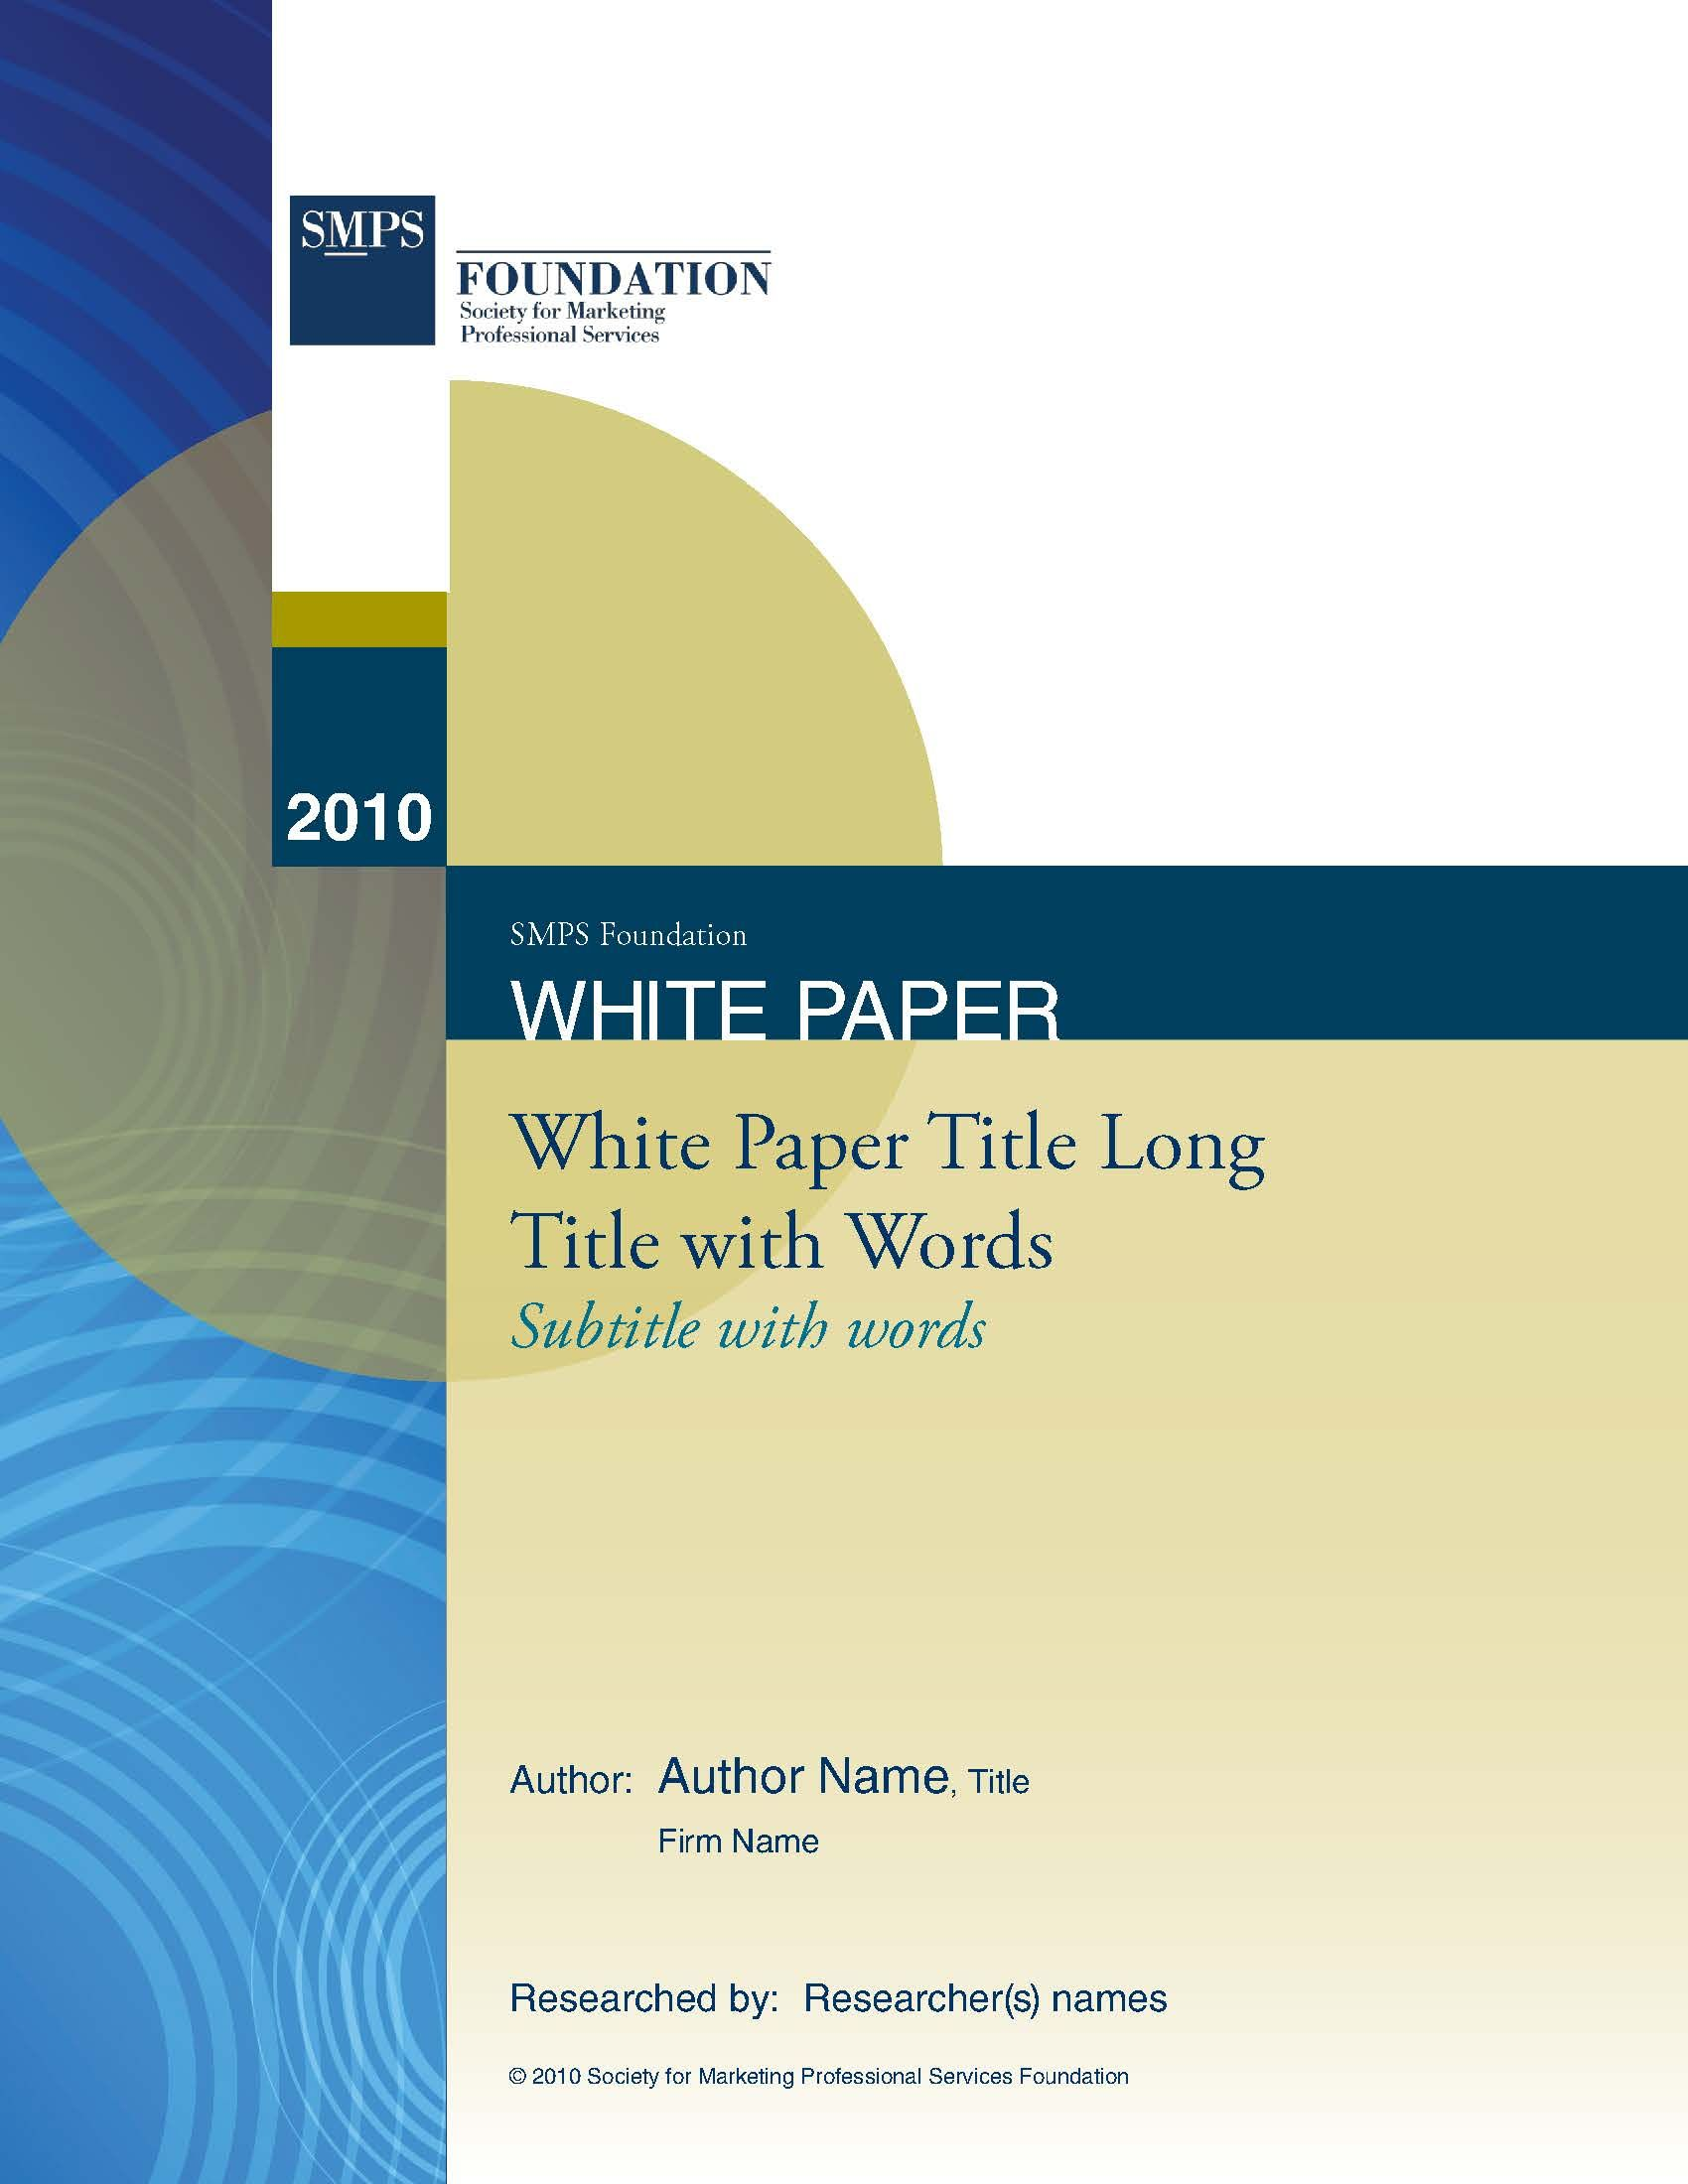 SMPS National White Paper Template design in Word – White Paper Template Word